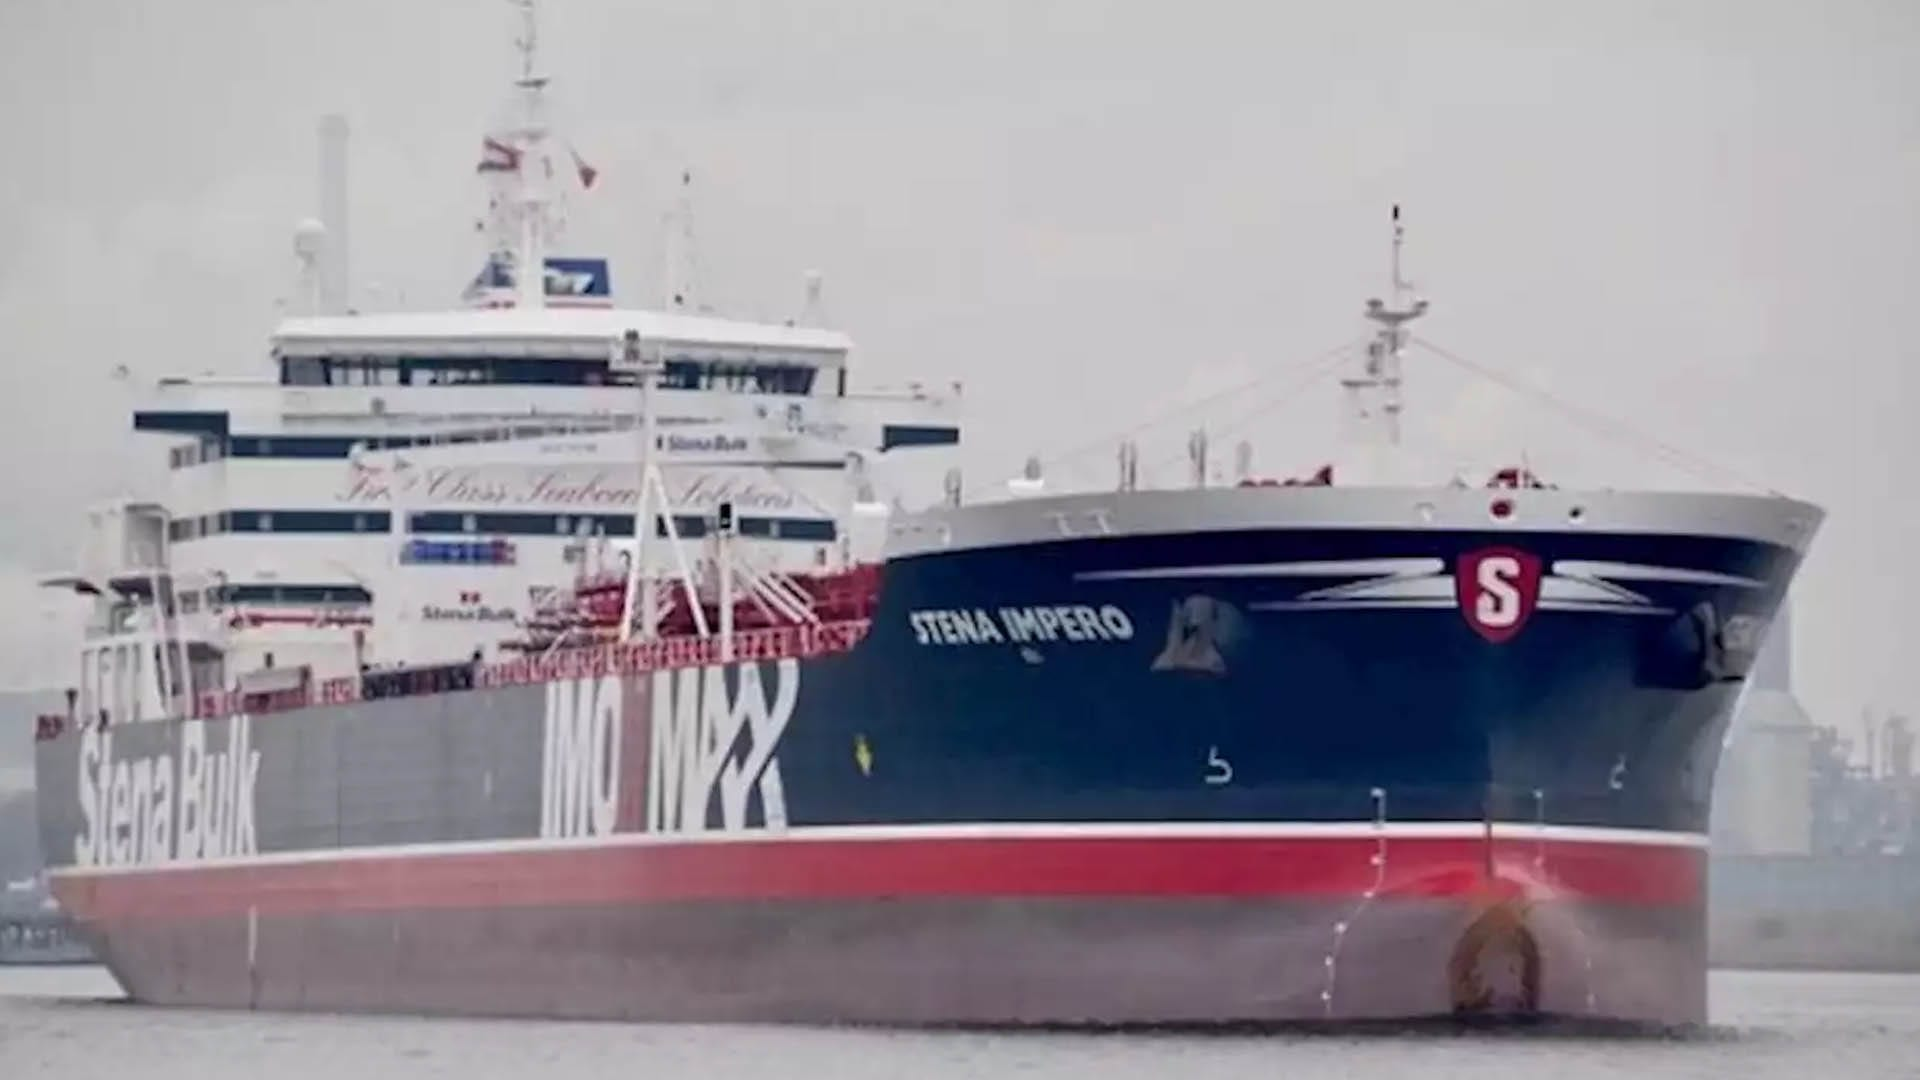 Stena Impero Departs for International Waters